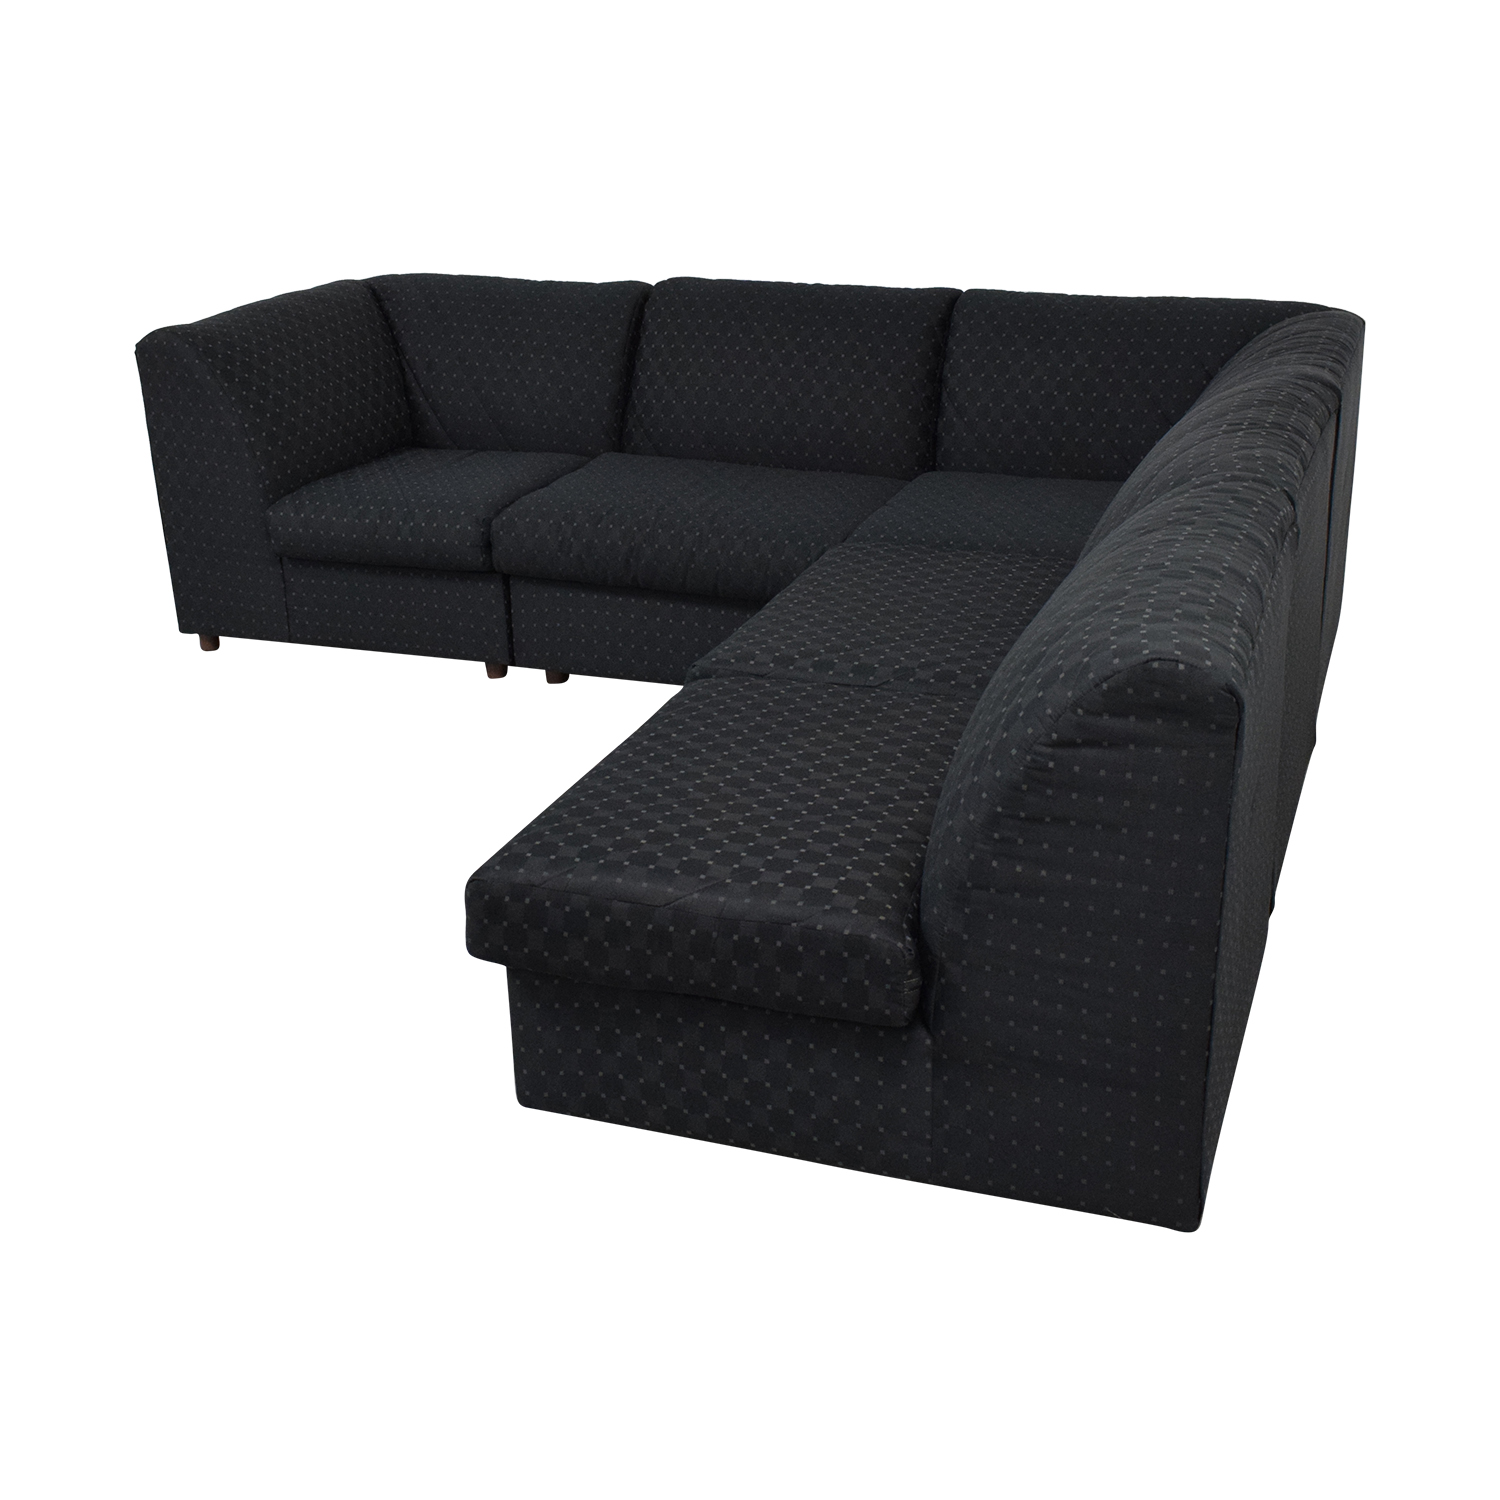 62 off broyhill furniture broyhill furniture corner sectional with ottoman sofas